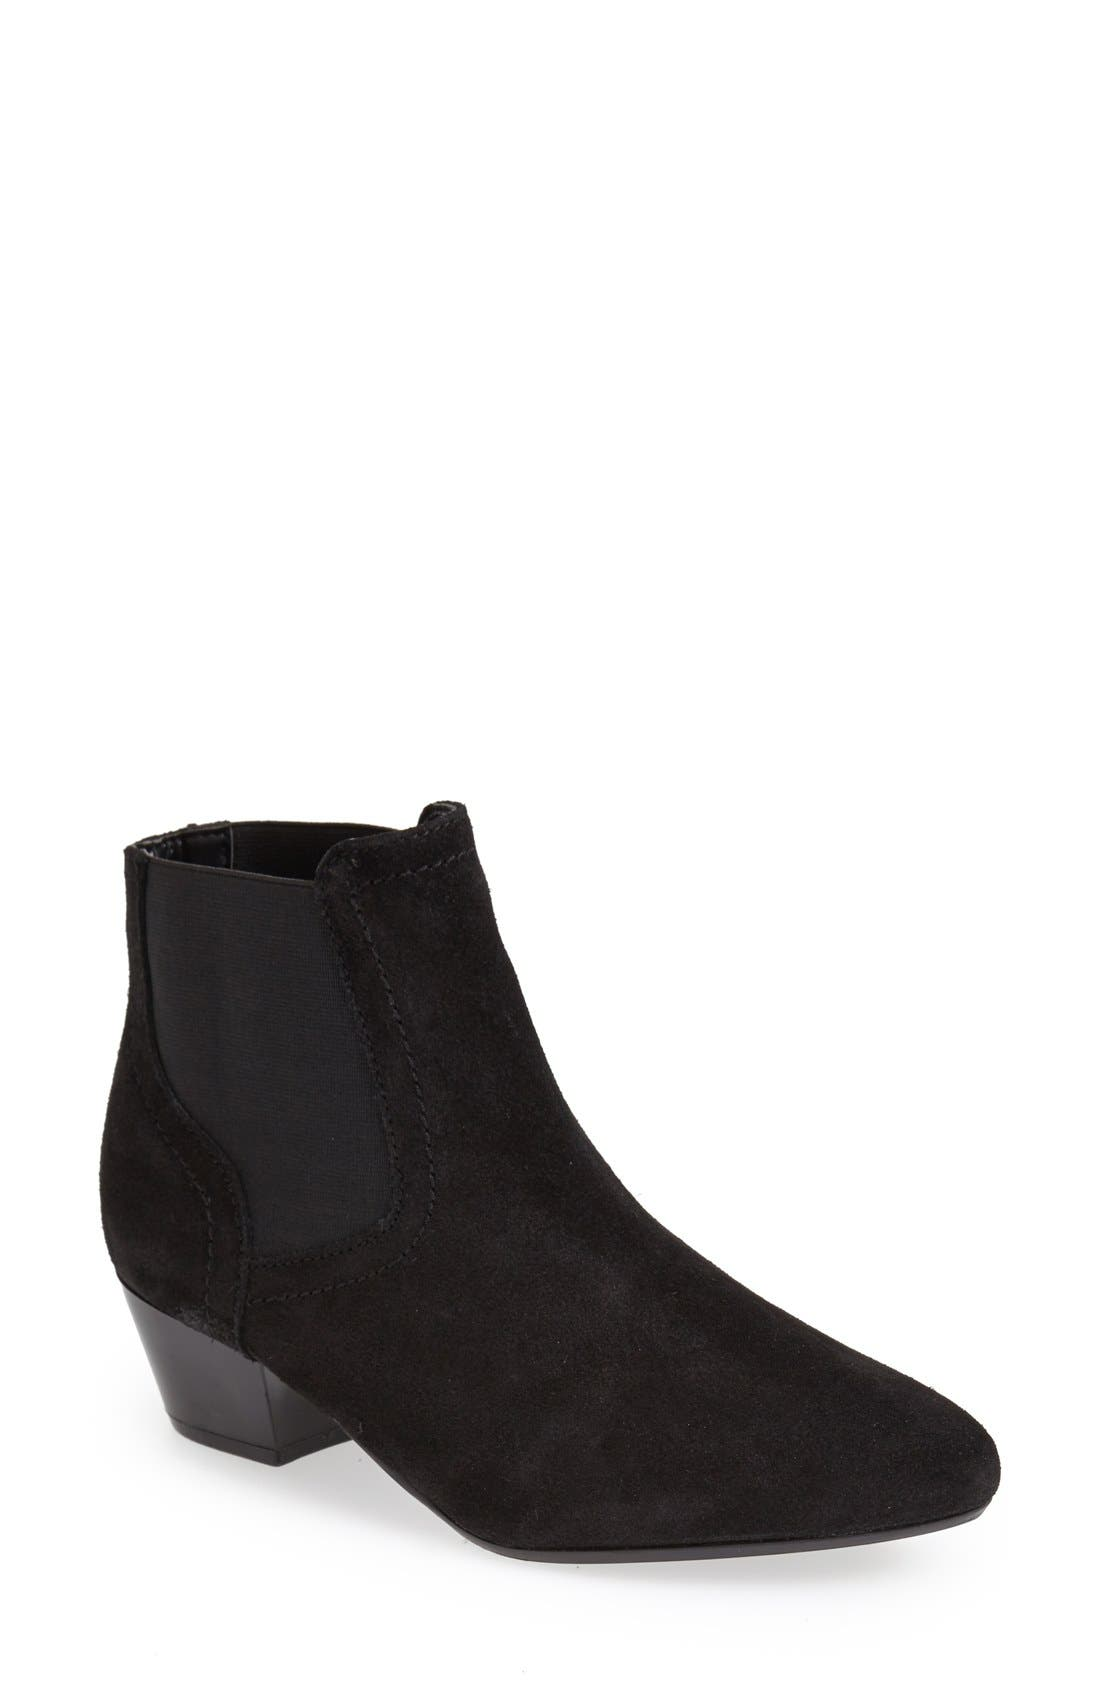 Alternate Image 1 Selected - Topshop Chelsea Ankle Boot (Women)